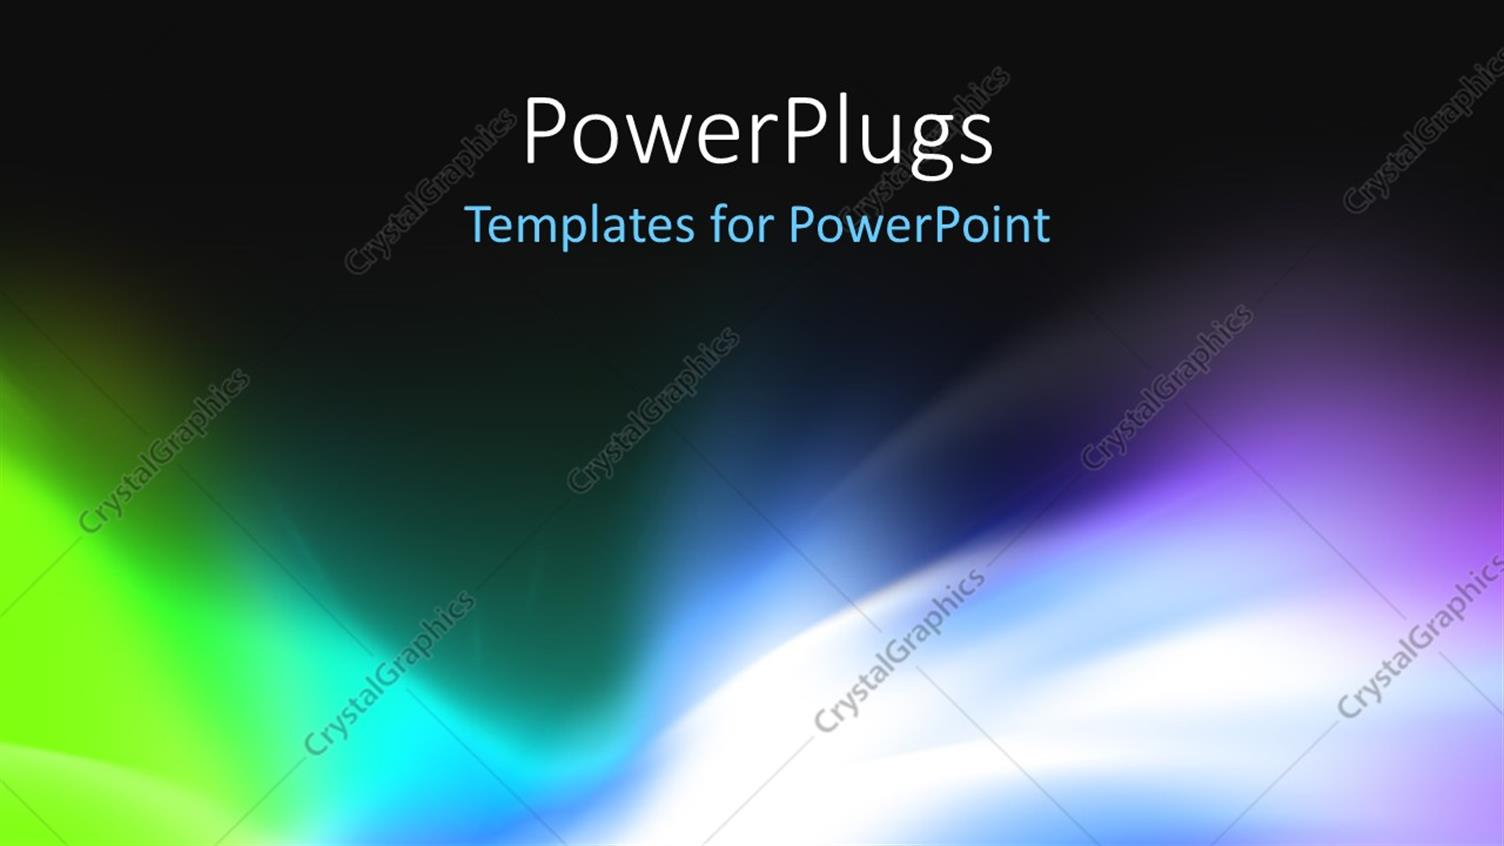 PowerPoint Template Displaying Abstract Background for Design Visualizing Motion and Energy